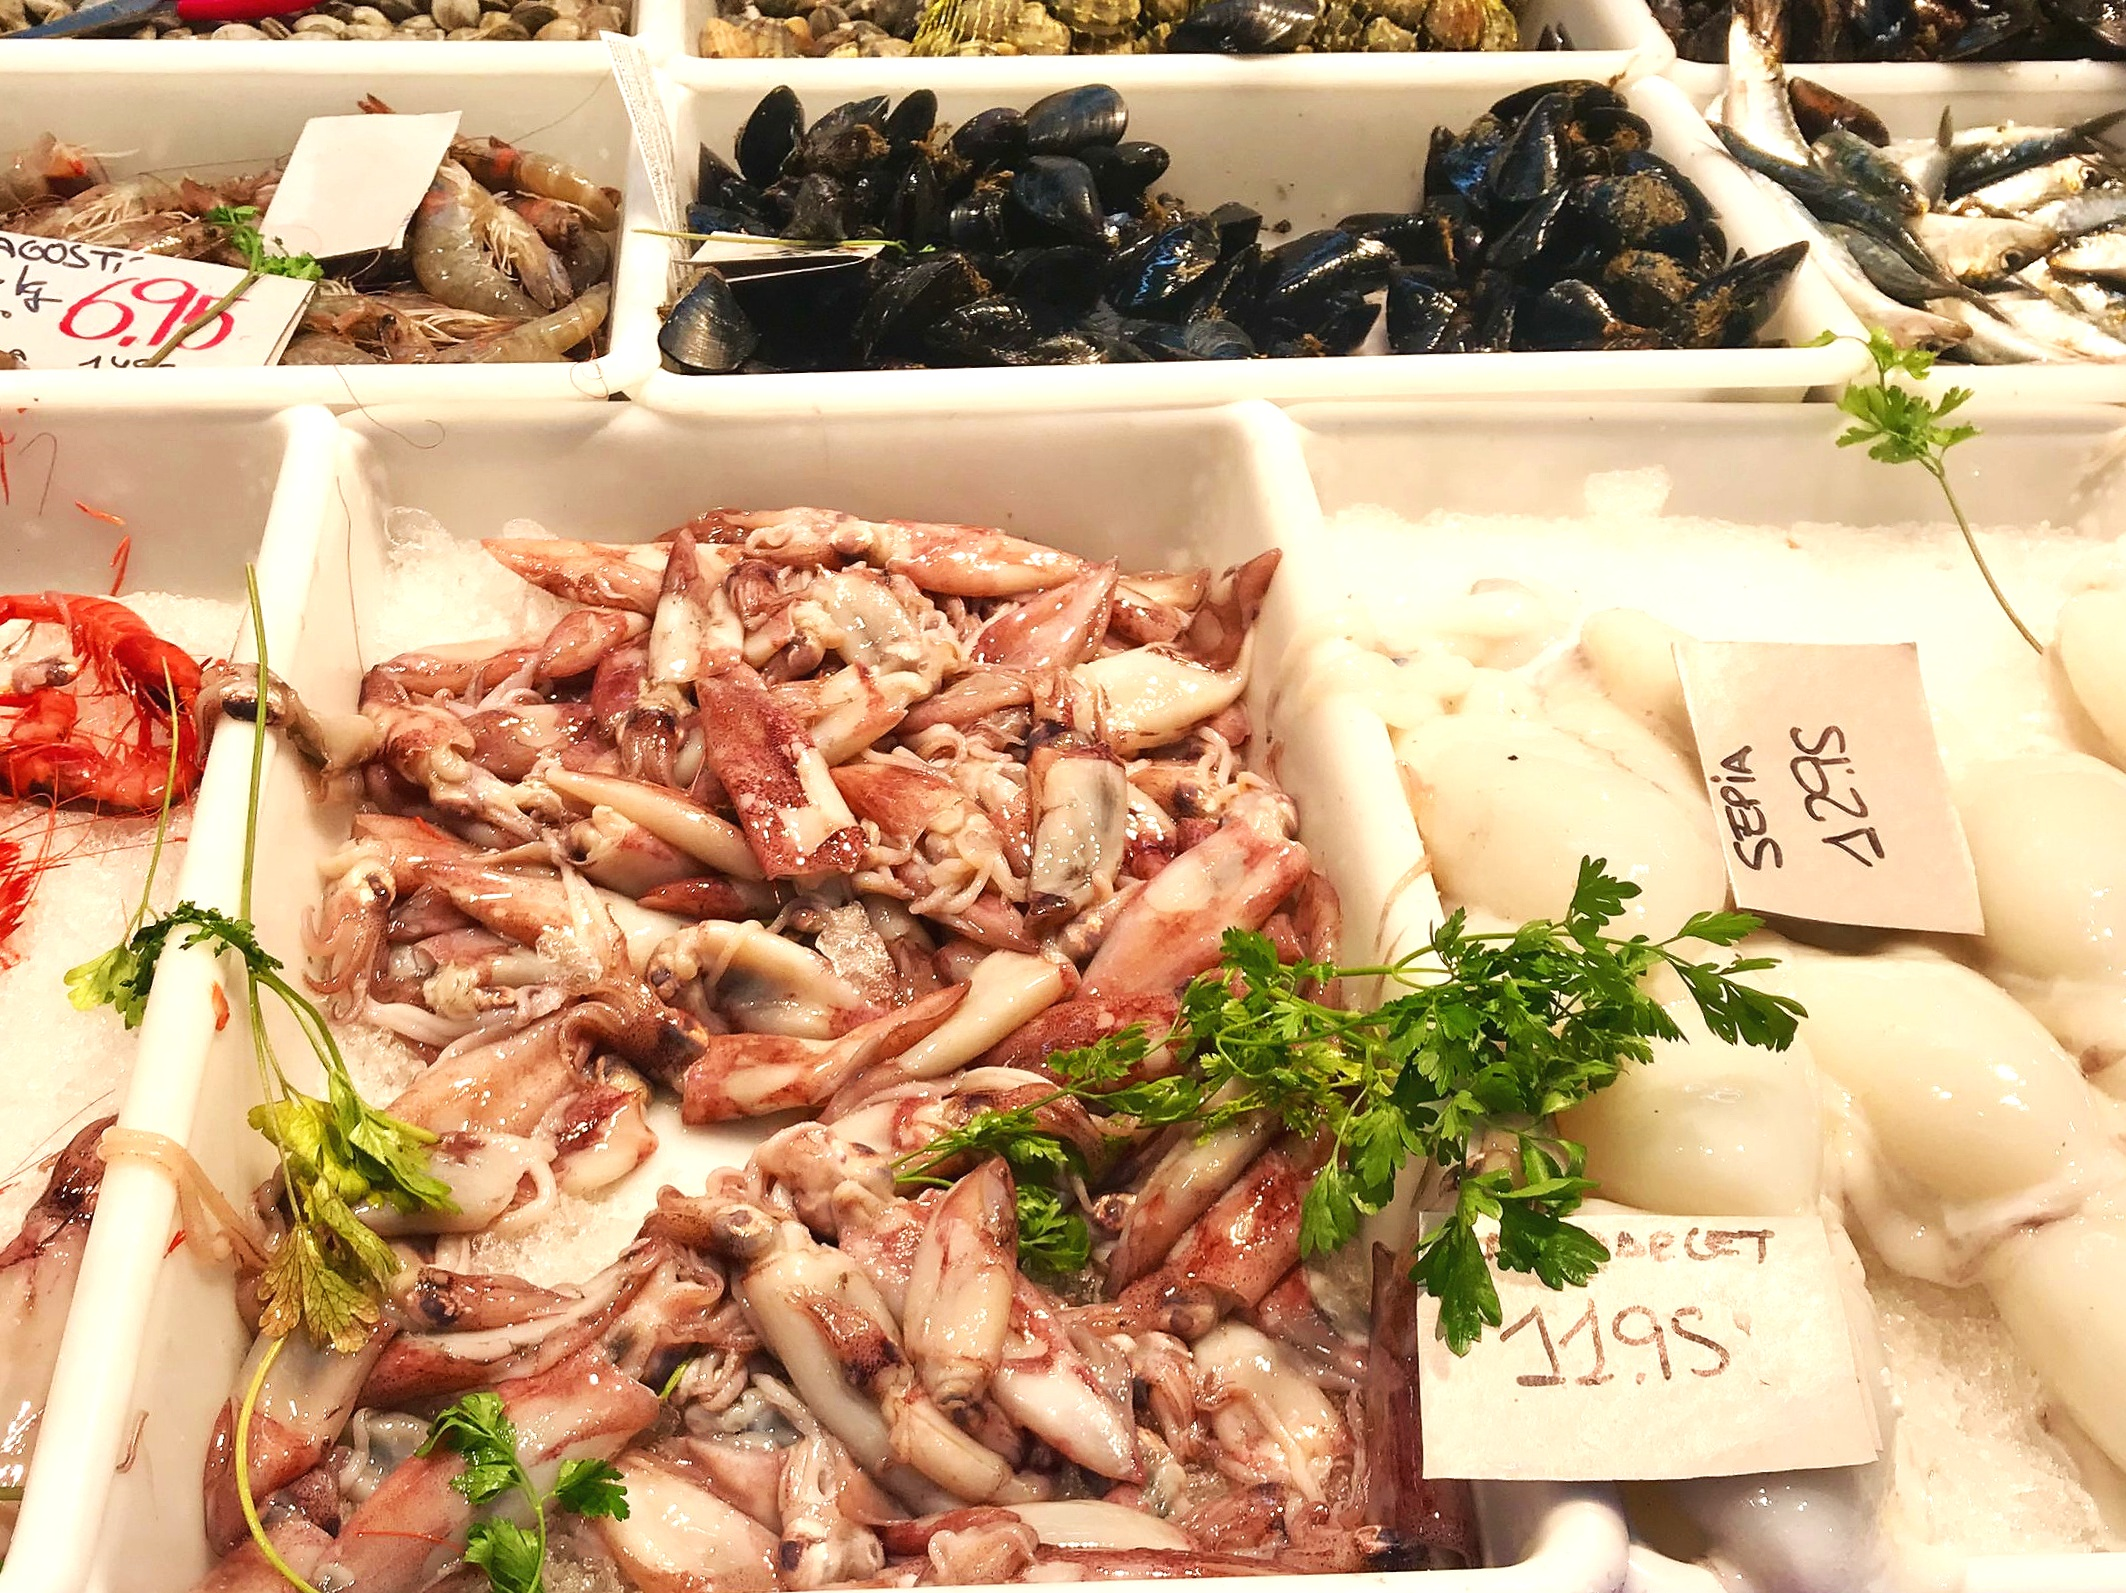 In the morning we stock up at the market. On the right is sepia, my favorite local seafood and yes, it's a member of the  Cephalopoda  family.